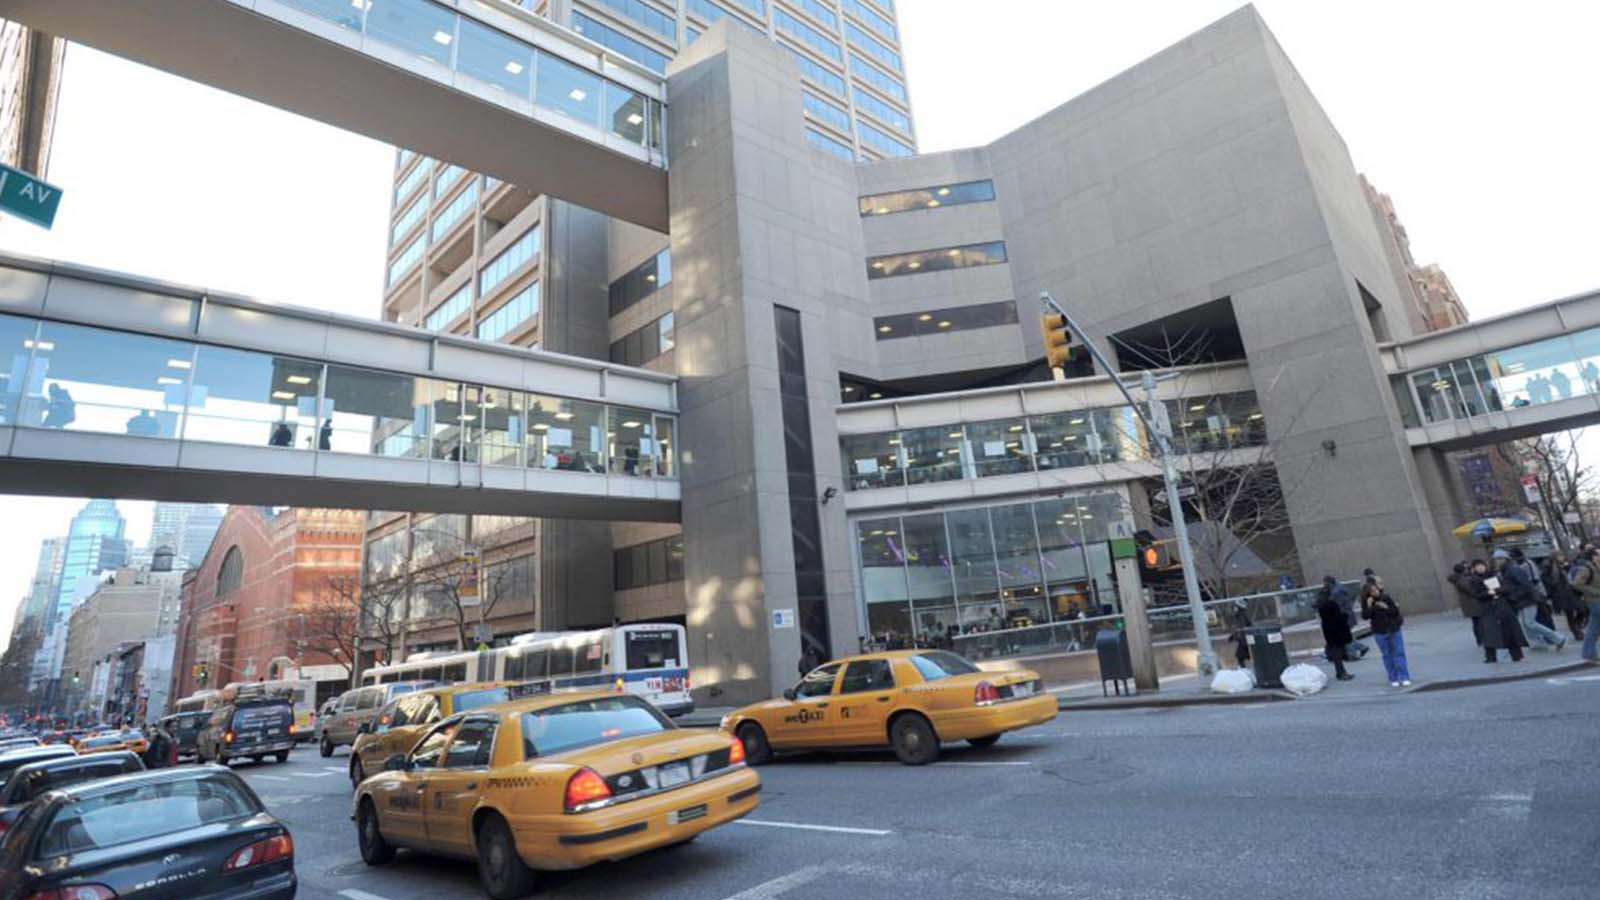 Street view of Hunter College